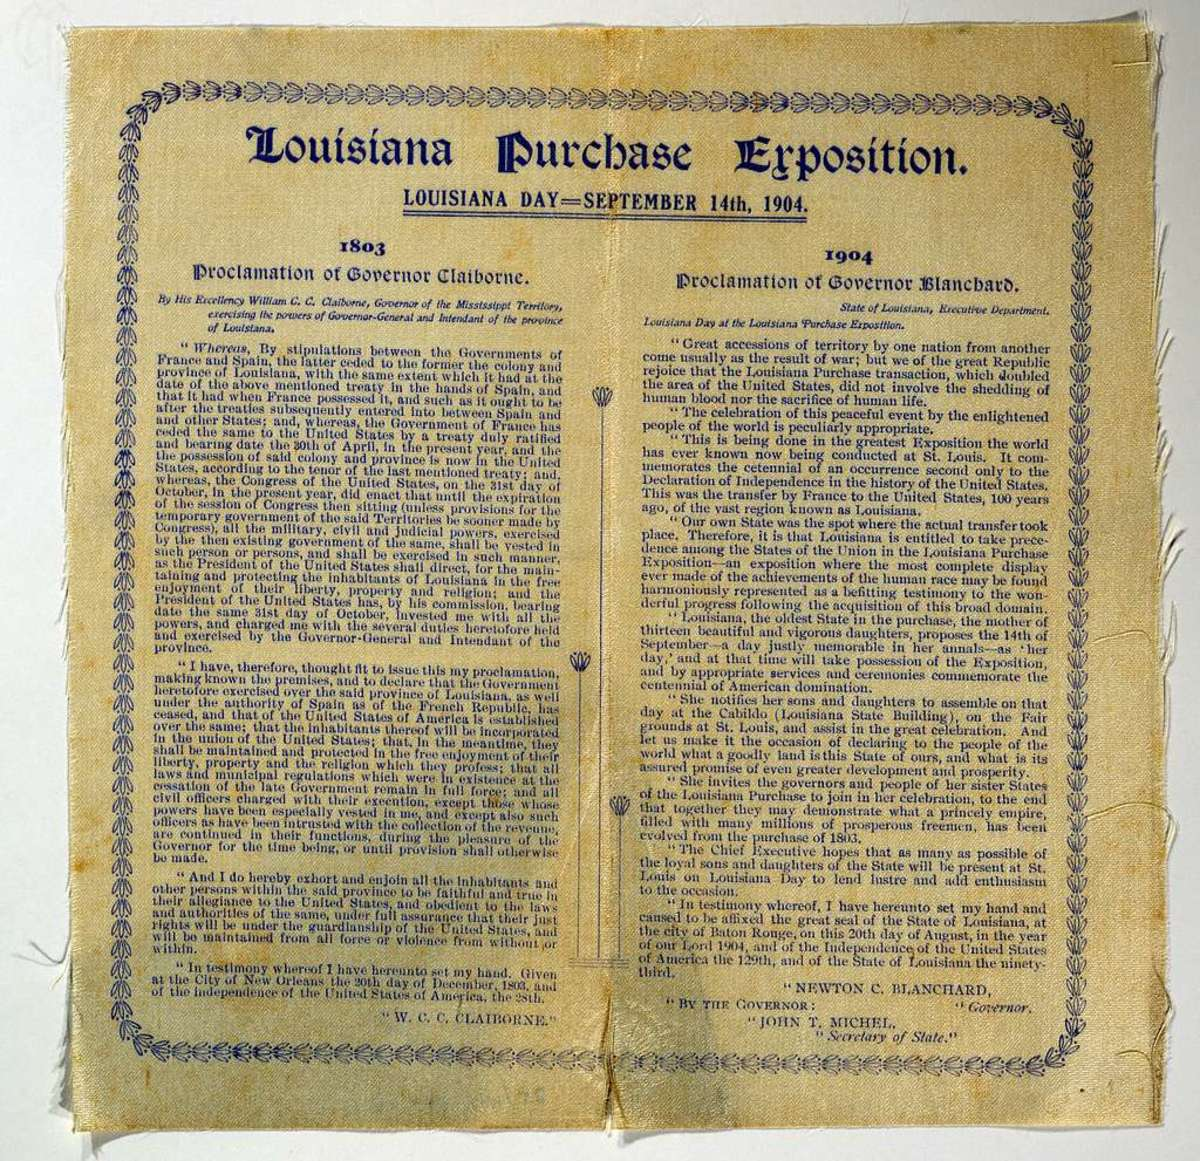 1803 Proclamation side by side with 1904 Proclamation